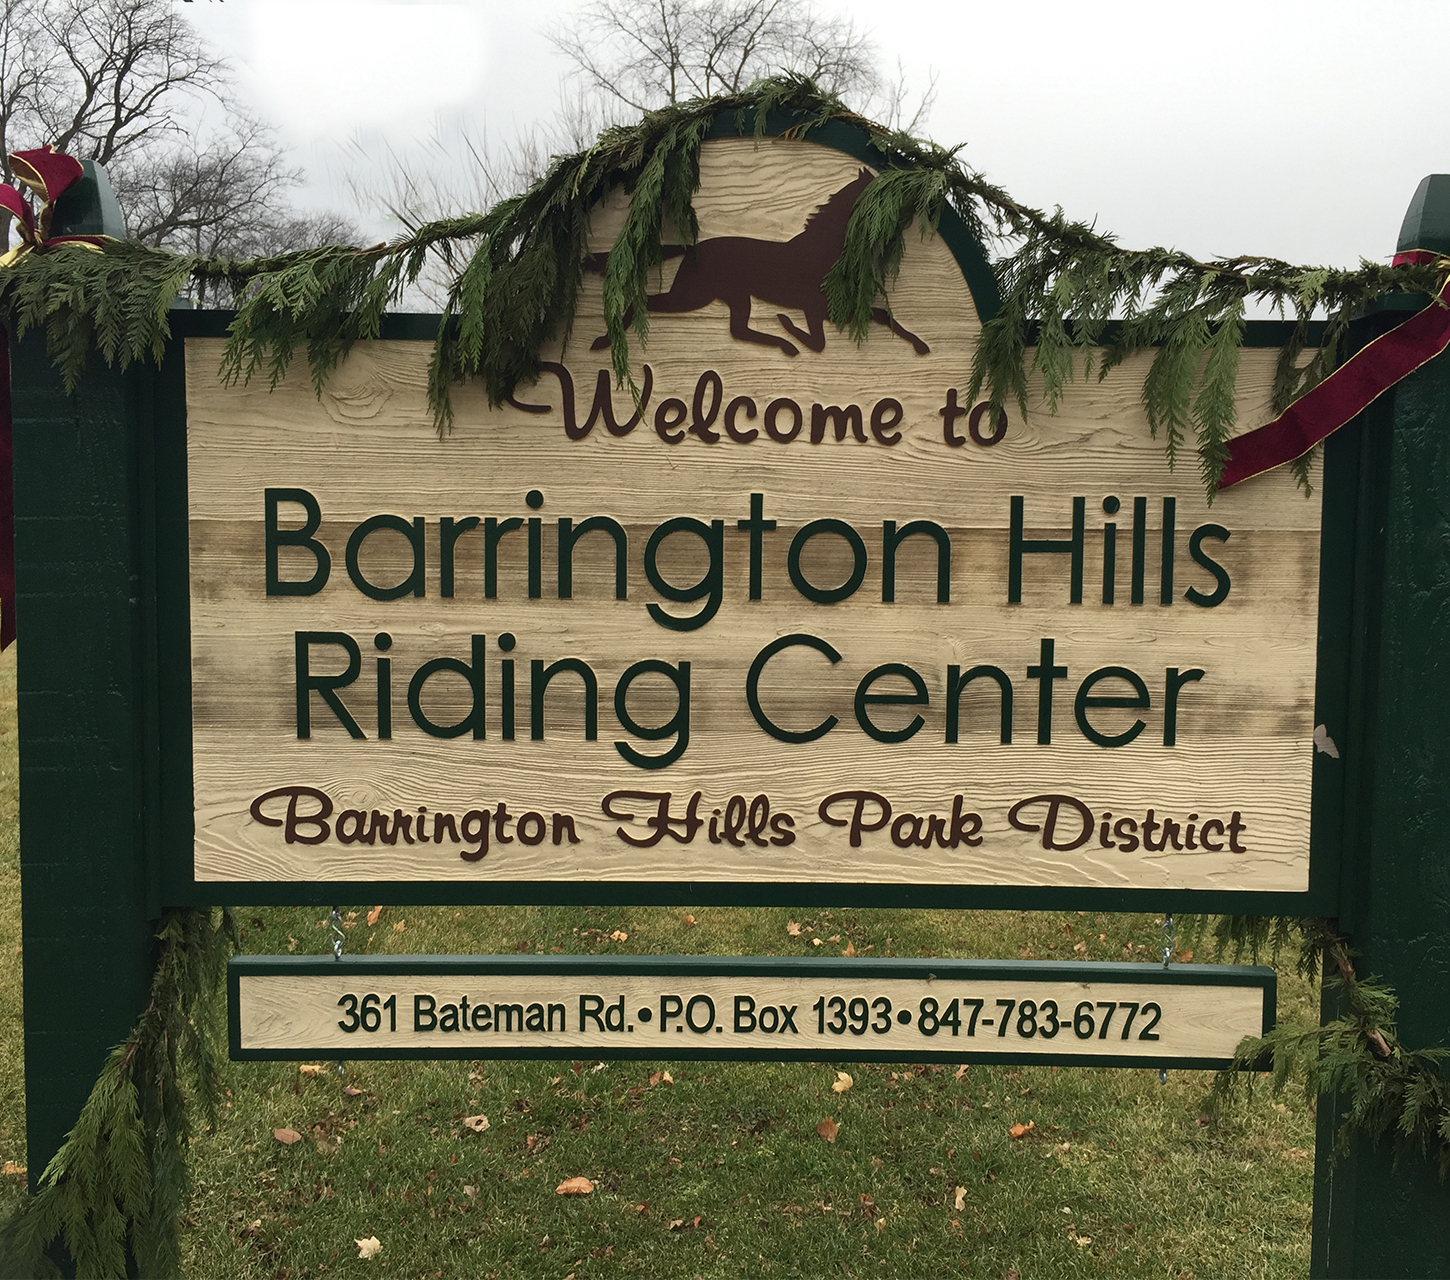 Barrington Hills Riding Center Welcome Sign